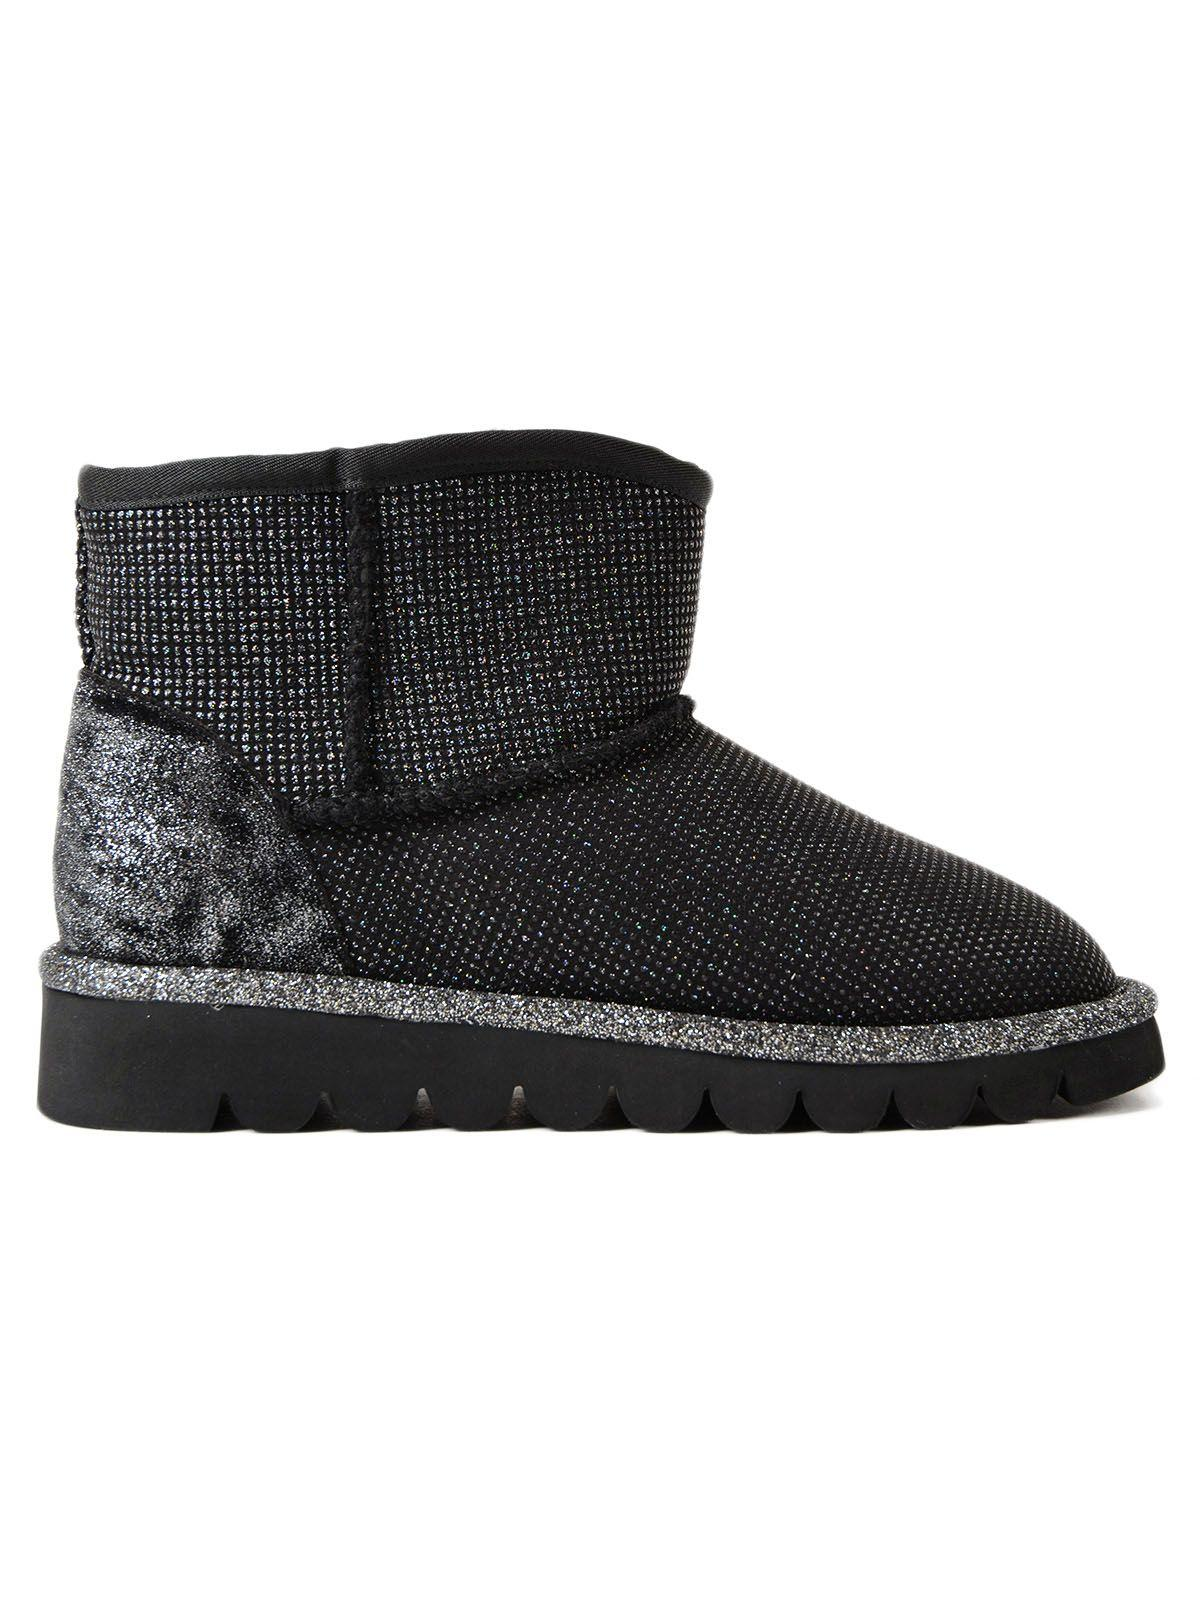 Twinset Boots In Stone